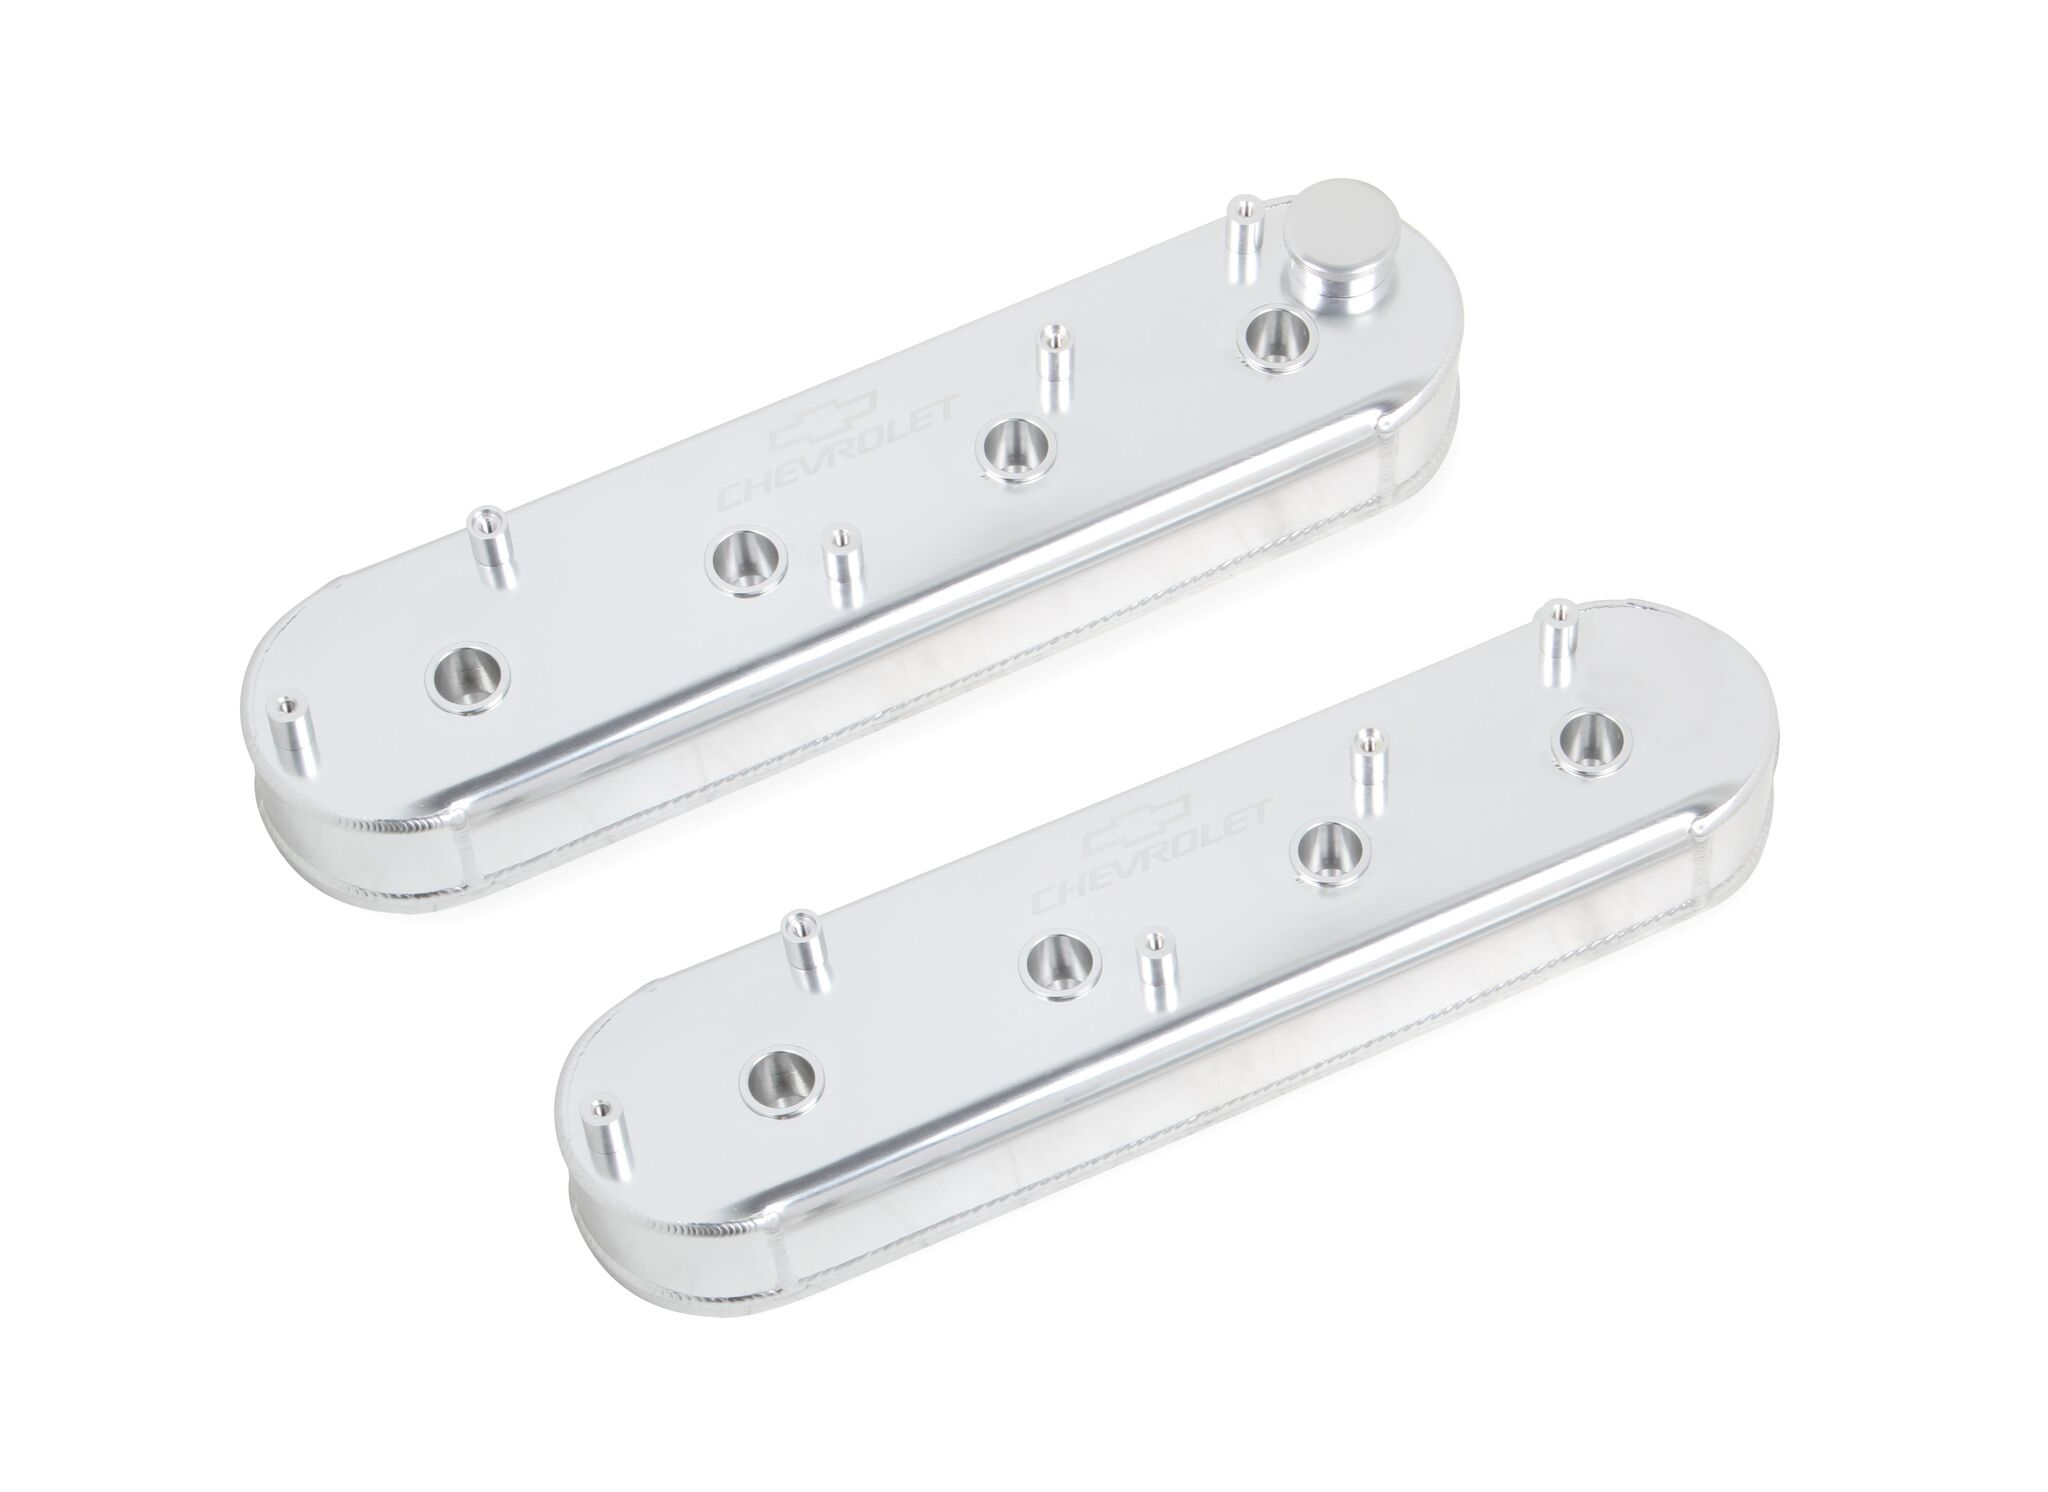 GM Track Series Fabricated Aluminum Valve Cover w/OEM Coil Stands, Silver,  GM LS engines